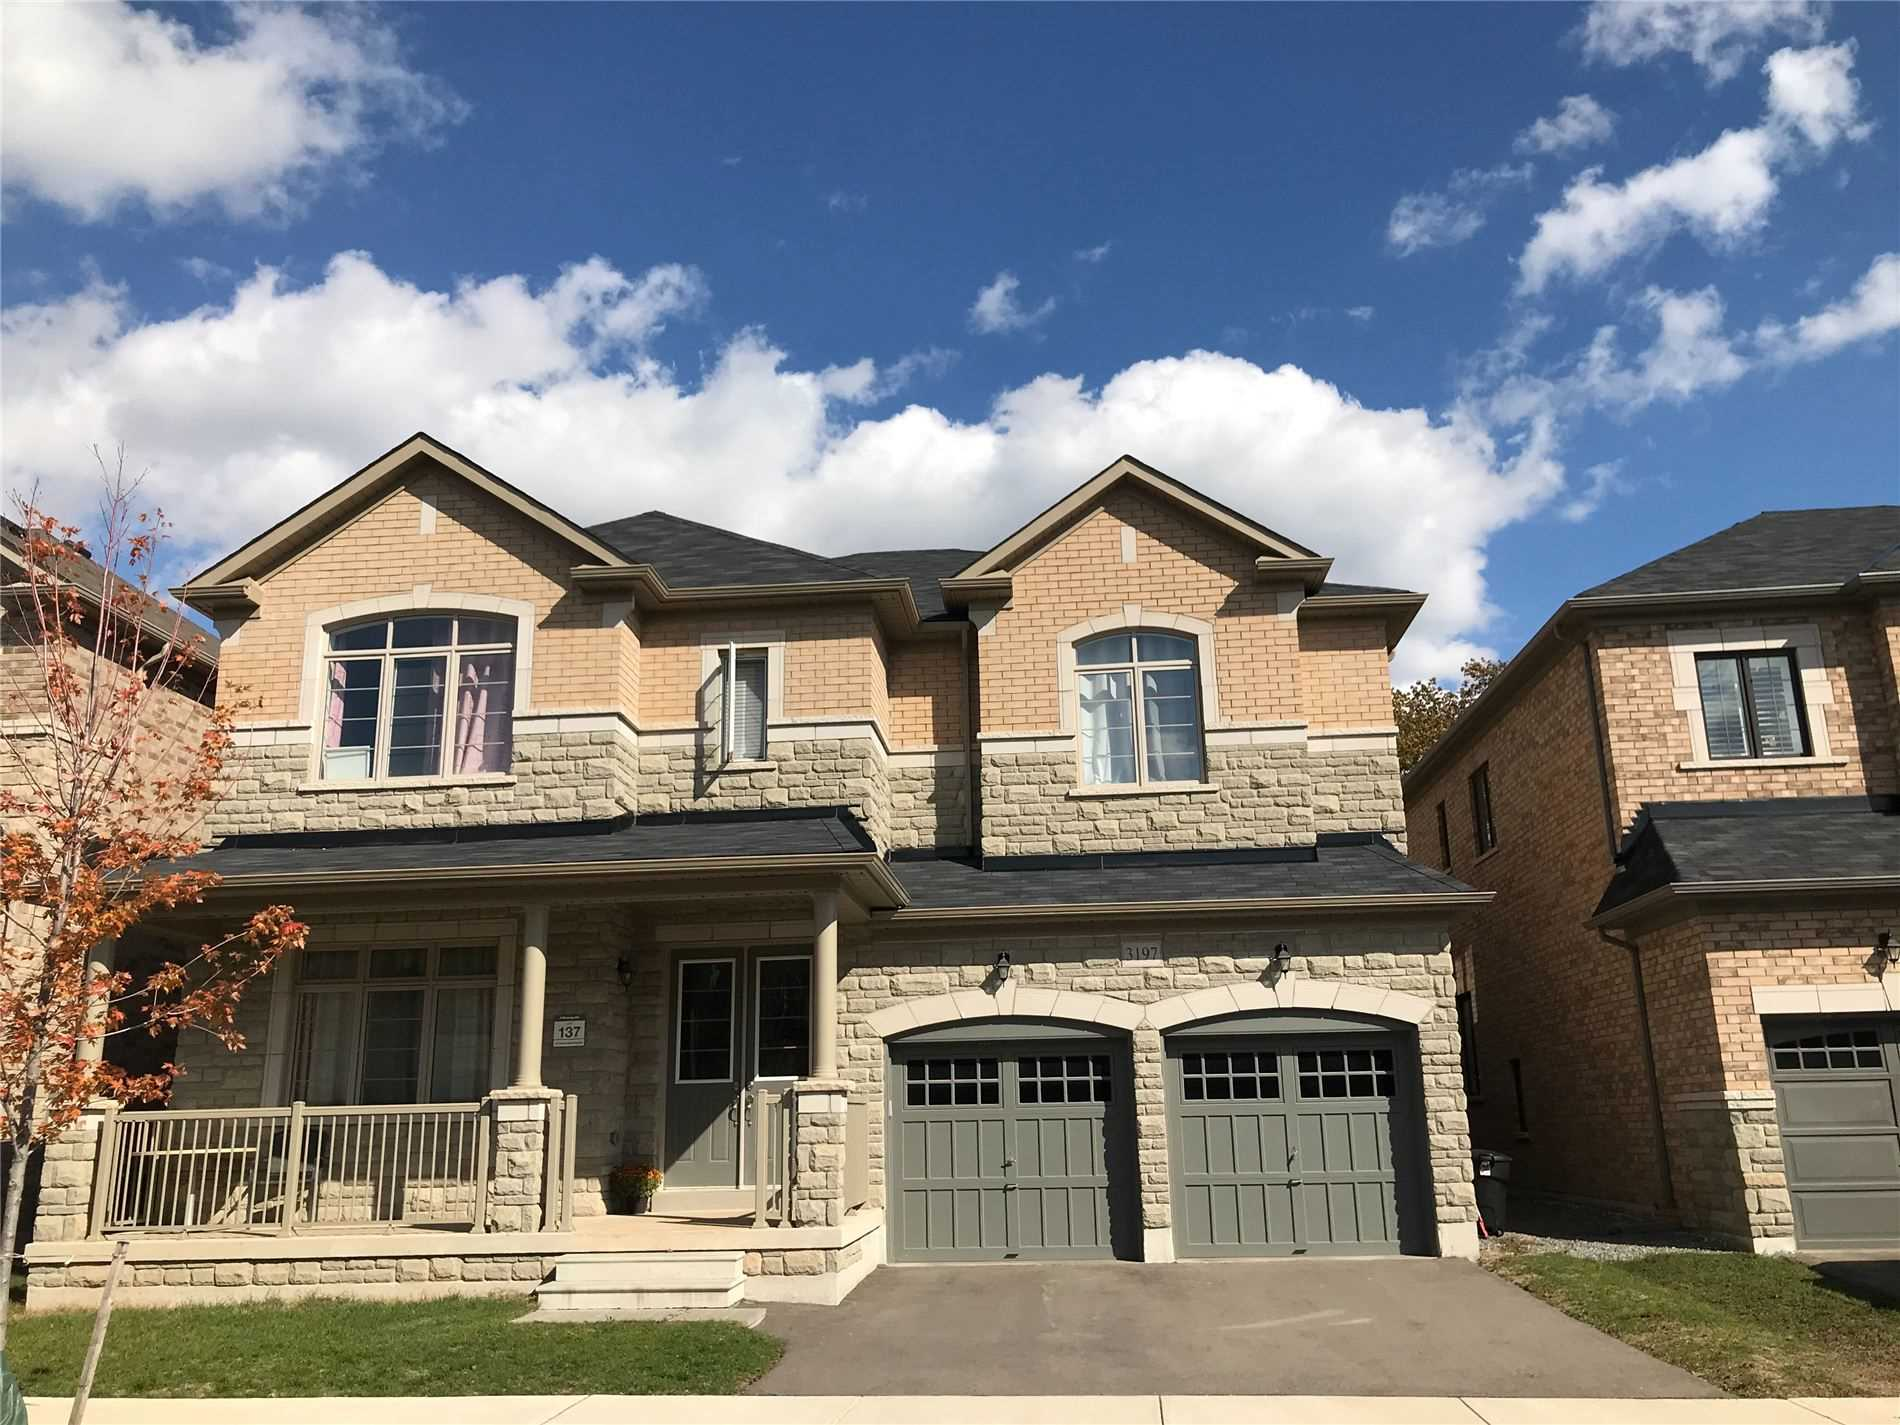 For Sale: 3197 Meadow Marsh Crescent, Oakville, ON   5 Bed, 4 Bath House for $1998000.00. See 17 photos!